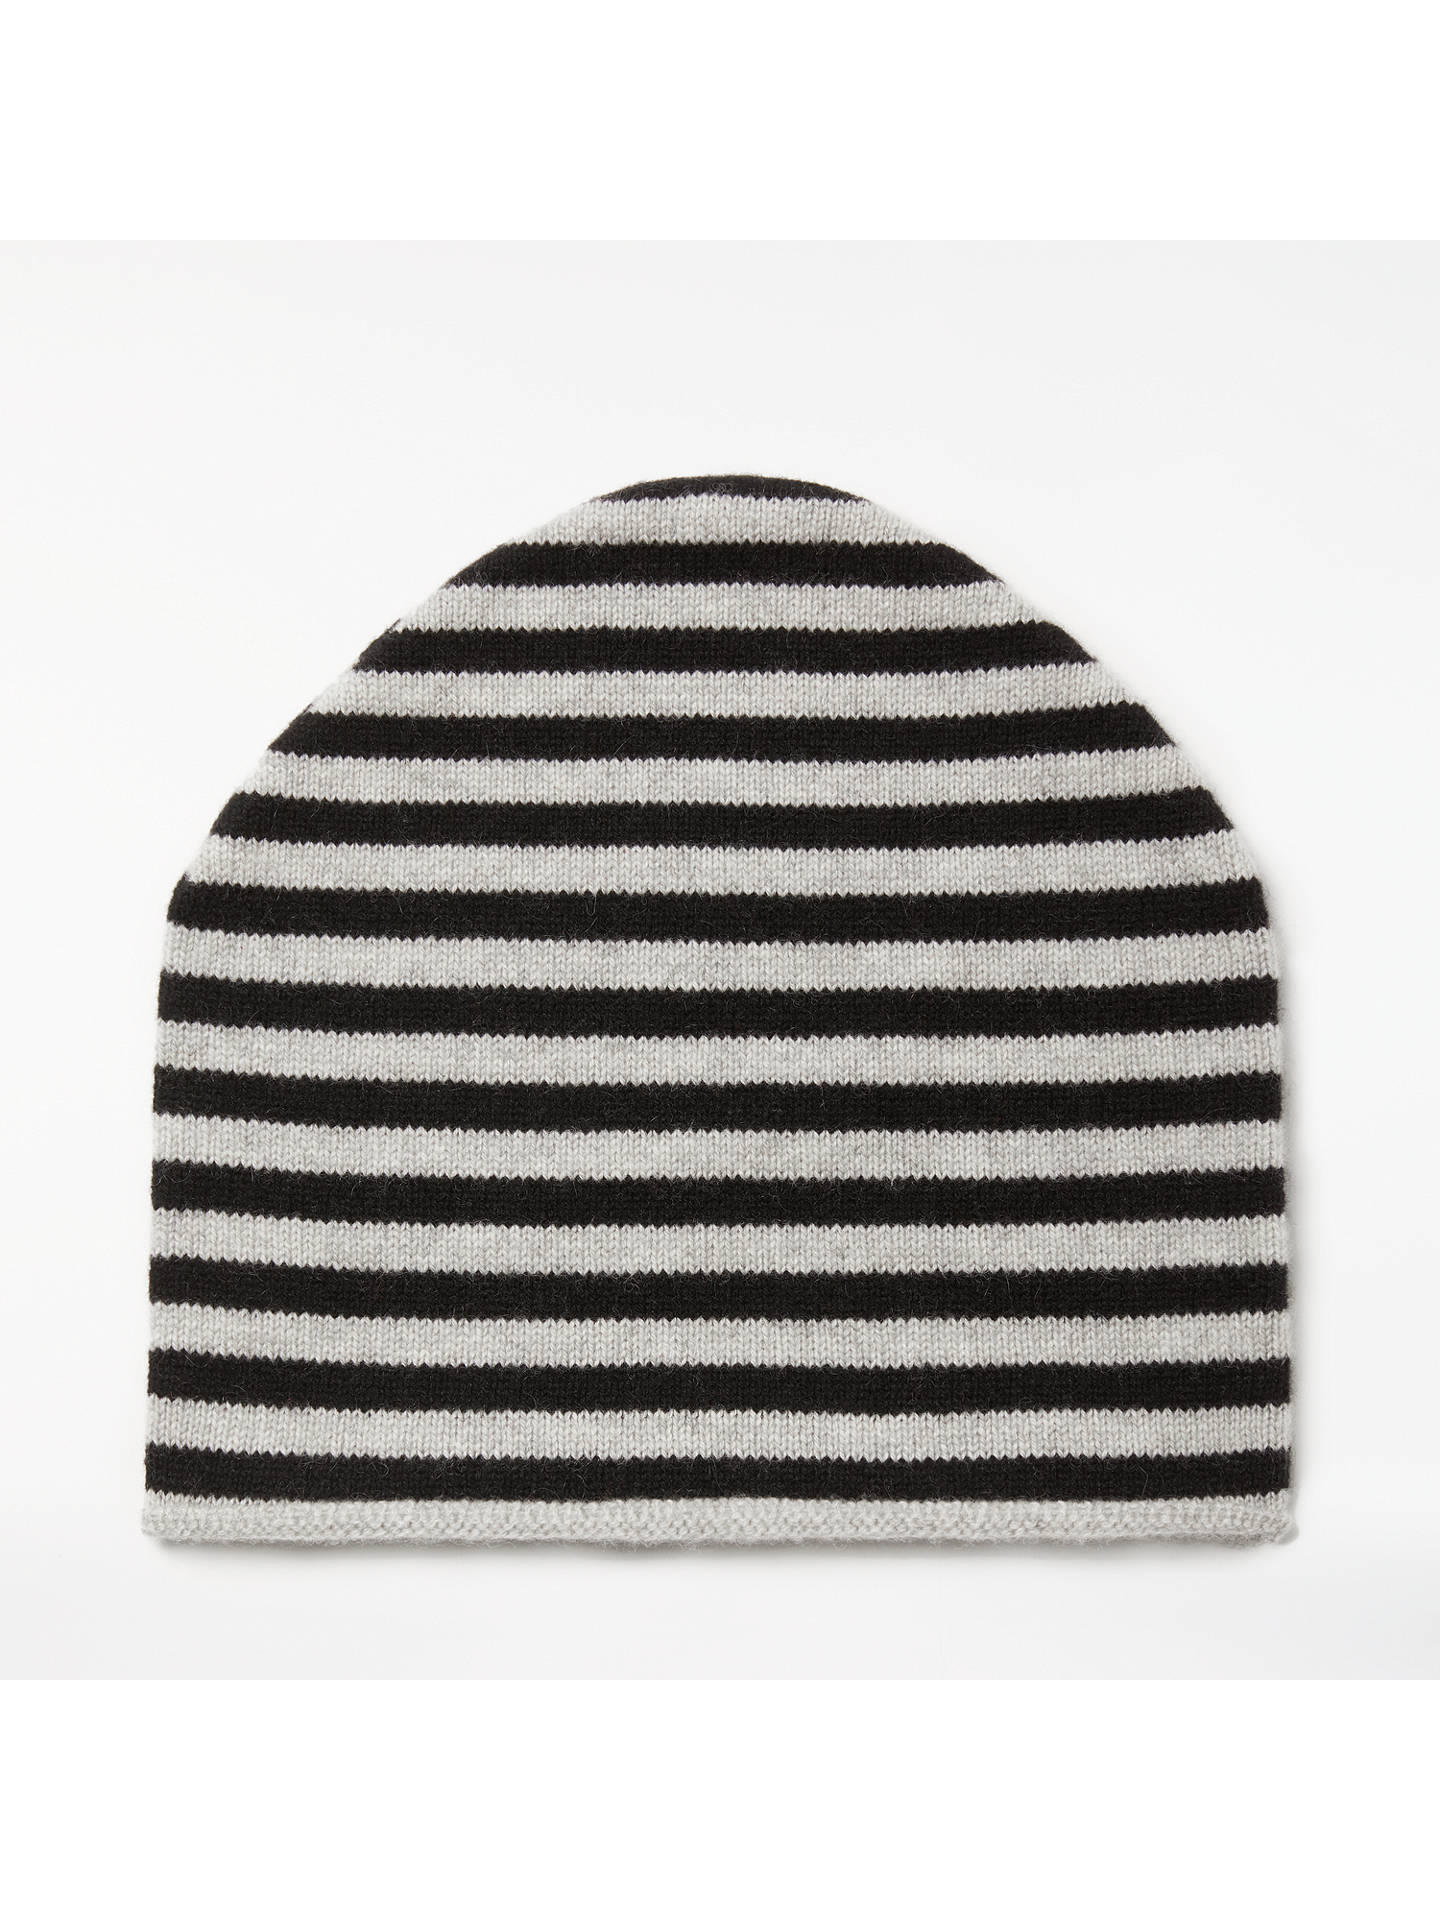 24c1ea0ee John Lewis & Partners Striped Cashmere Roll Beanie Hat, Black/Grey ...